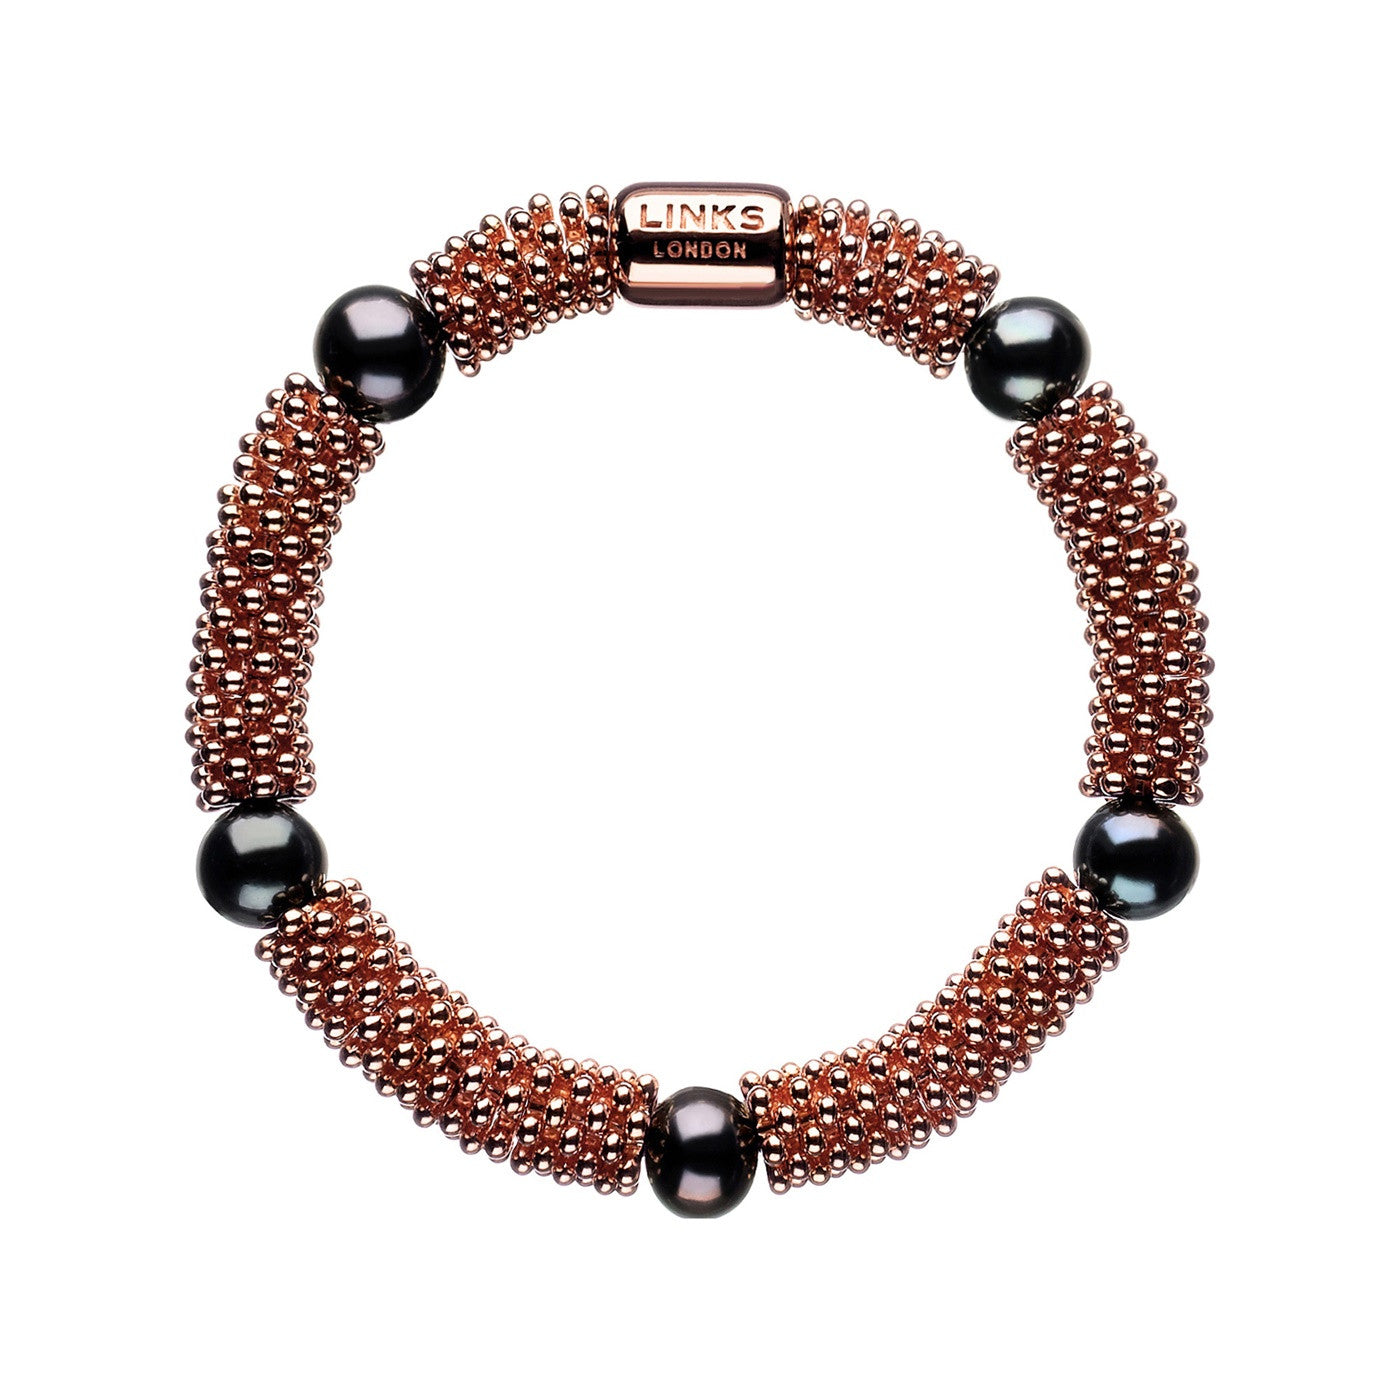 Links of London Effervescence Star Bracelet Rose Gold and Pearls - 5010.1397